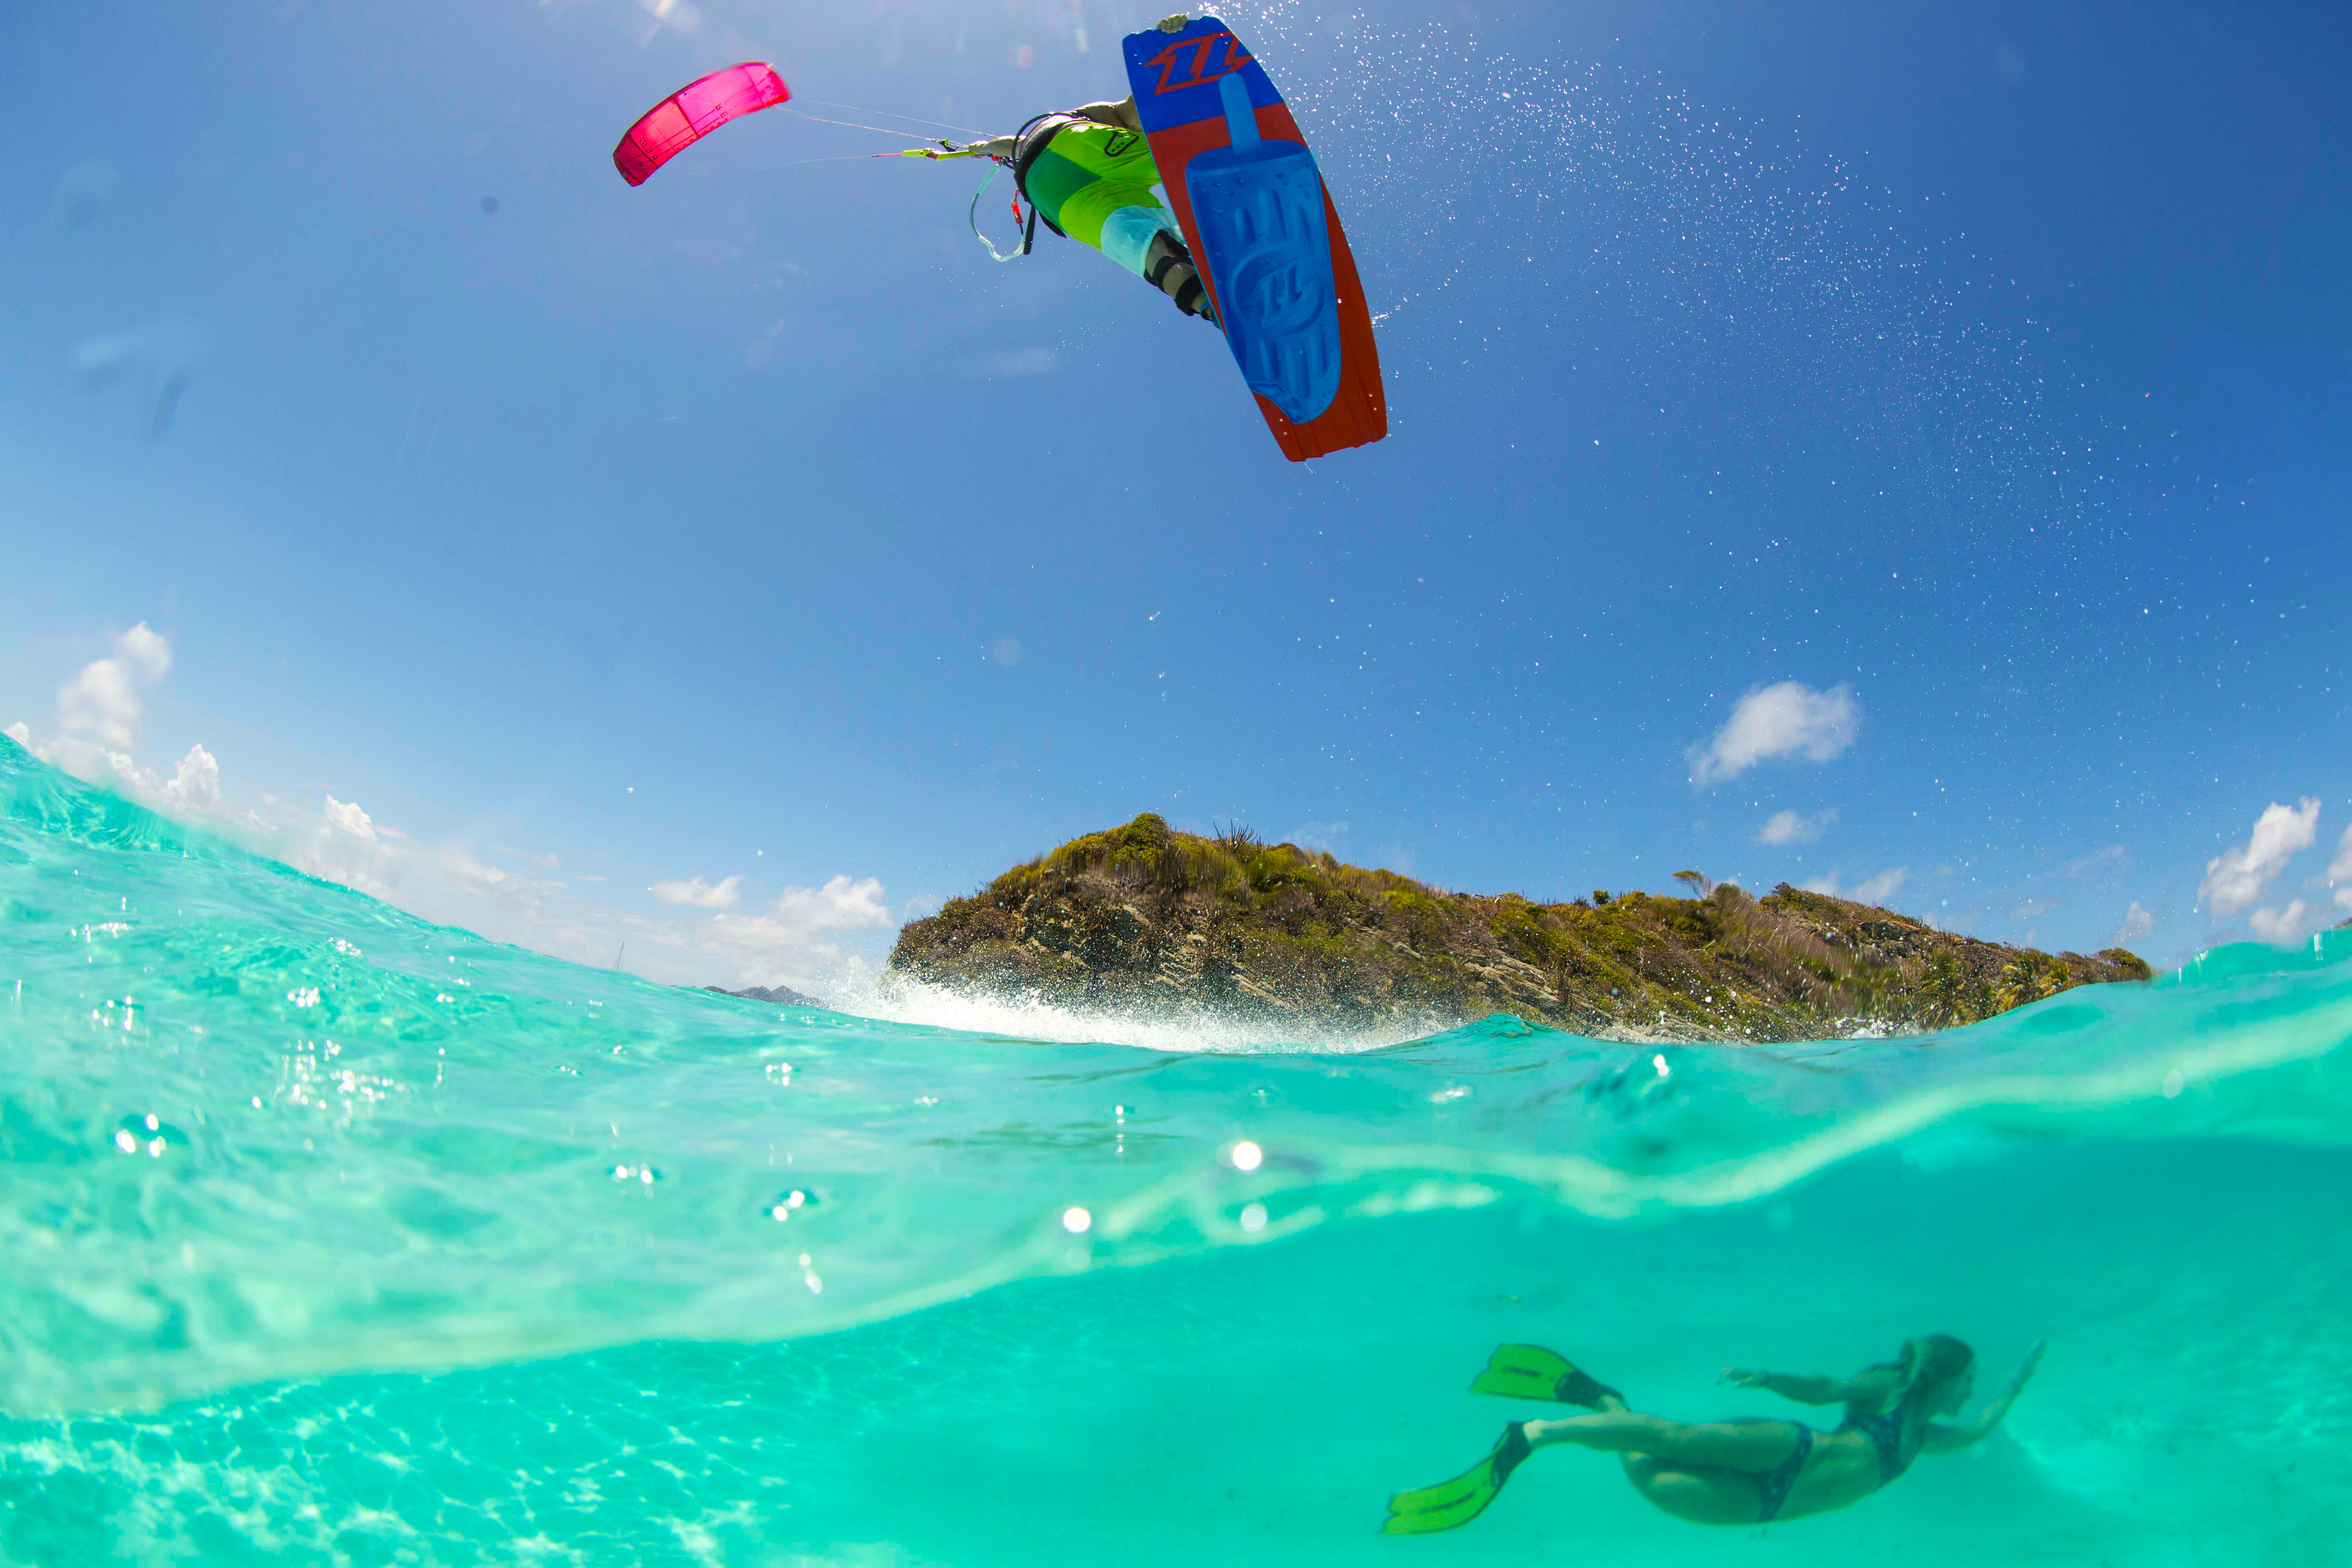 reserching women and boardsports essay Boardsports is a premier kiteboard, windsurf, stand up paddle retailer offering  rentals, lessons, demos san francisco, alameda, & san mateo, ca voted.